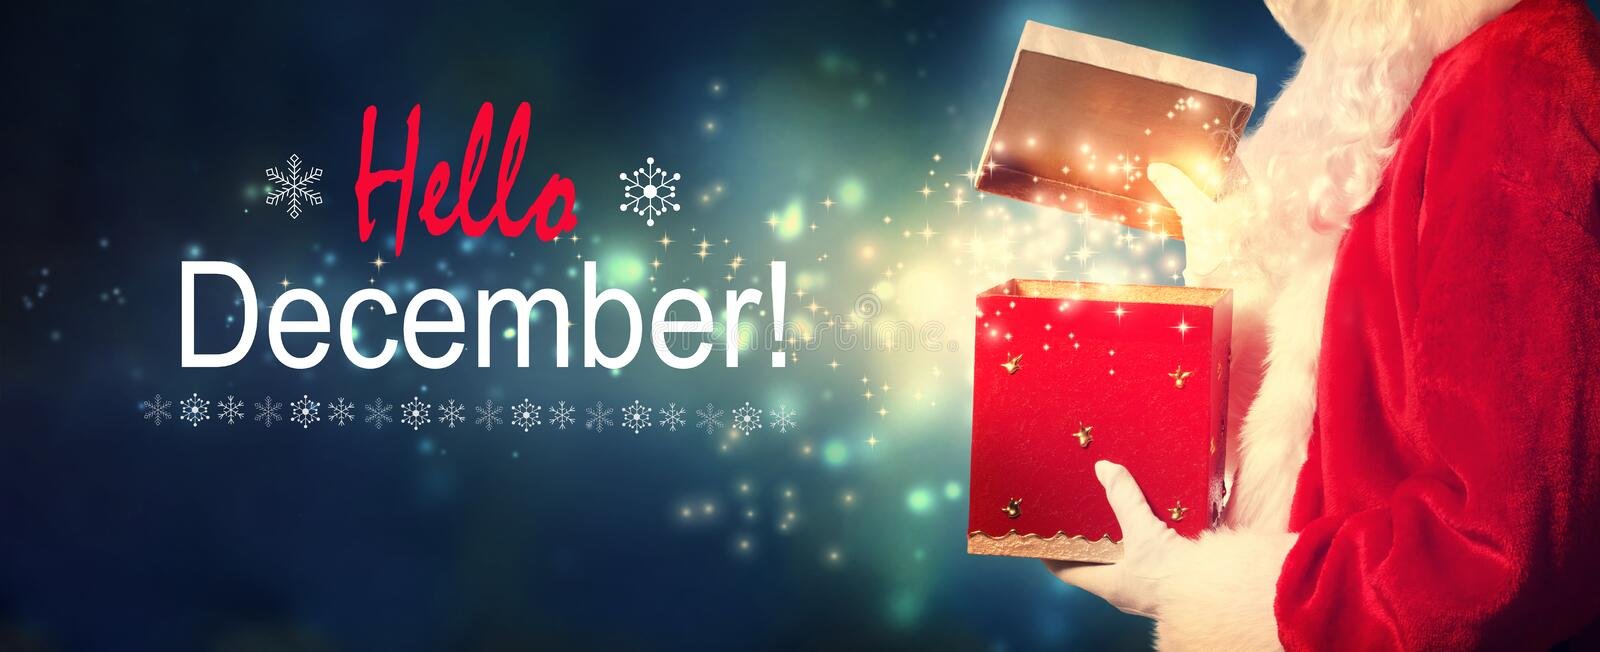 Hello December message with Santa opening a gift box. On a shiny light background stock image